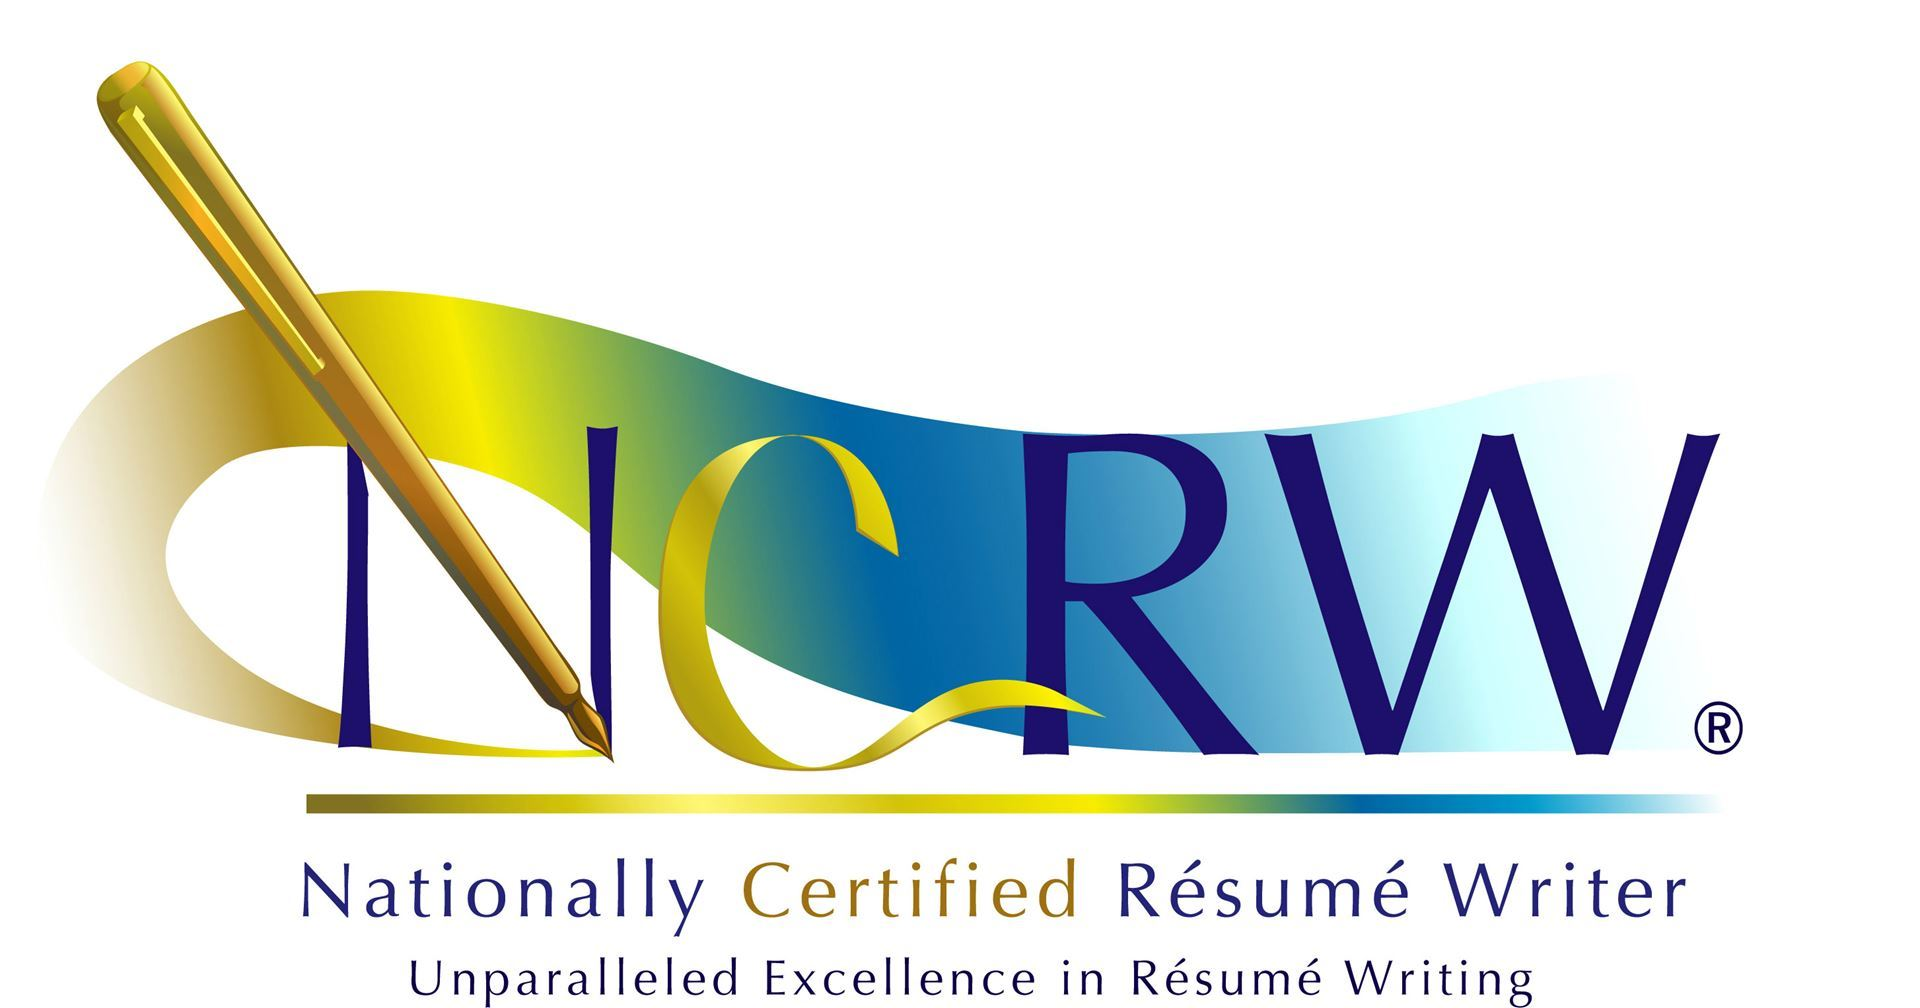 nationally certified resume writers must first prove their seniority in and commitment to the resume writing industry by presenting the certification